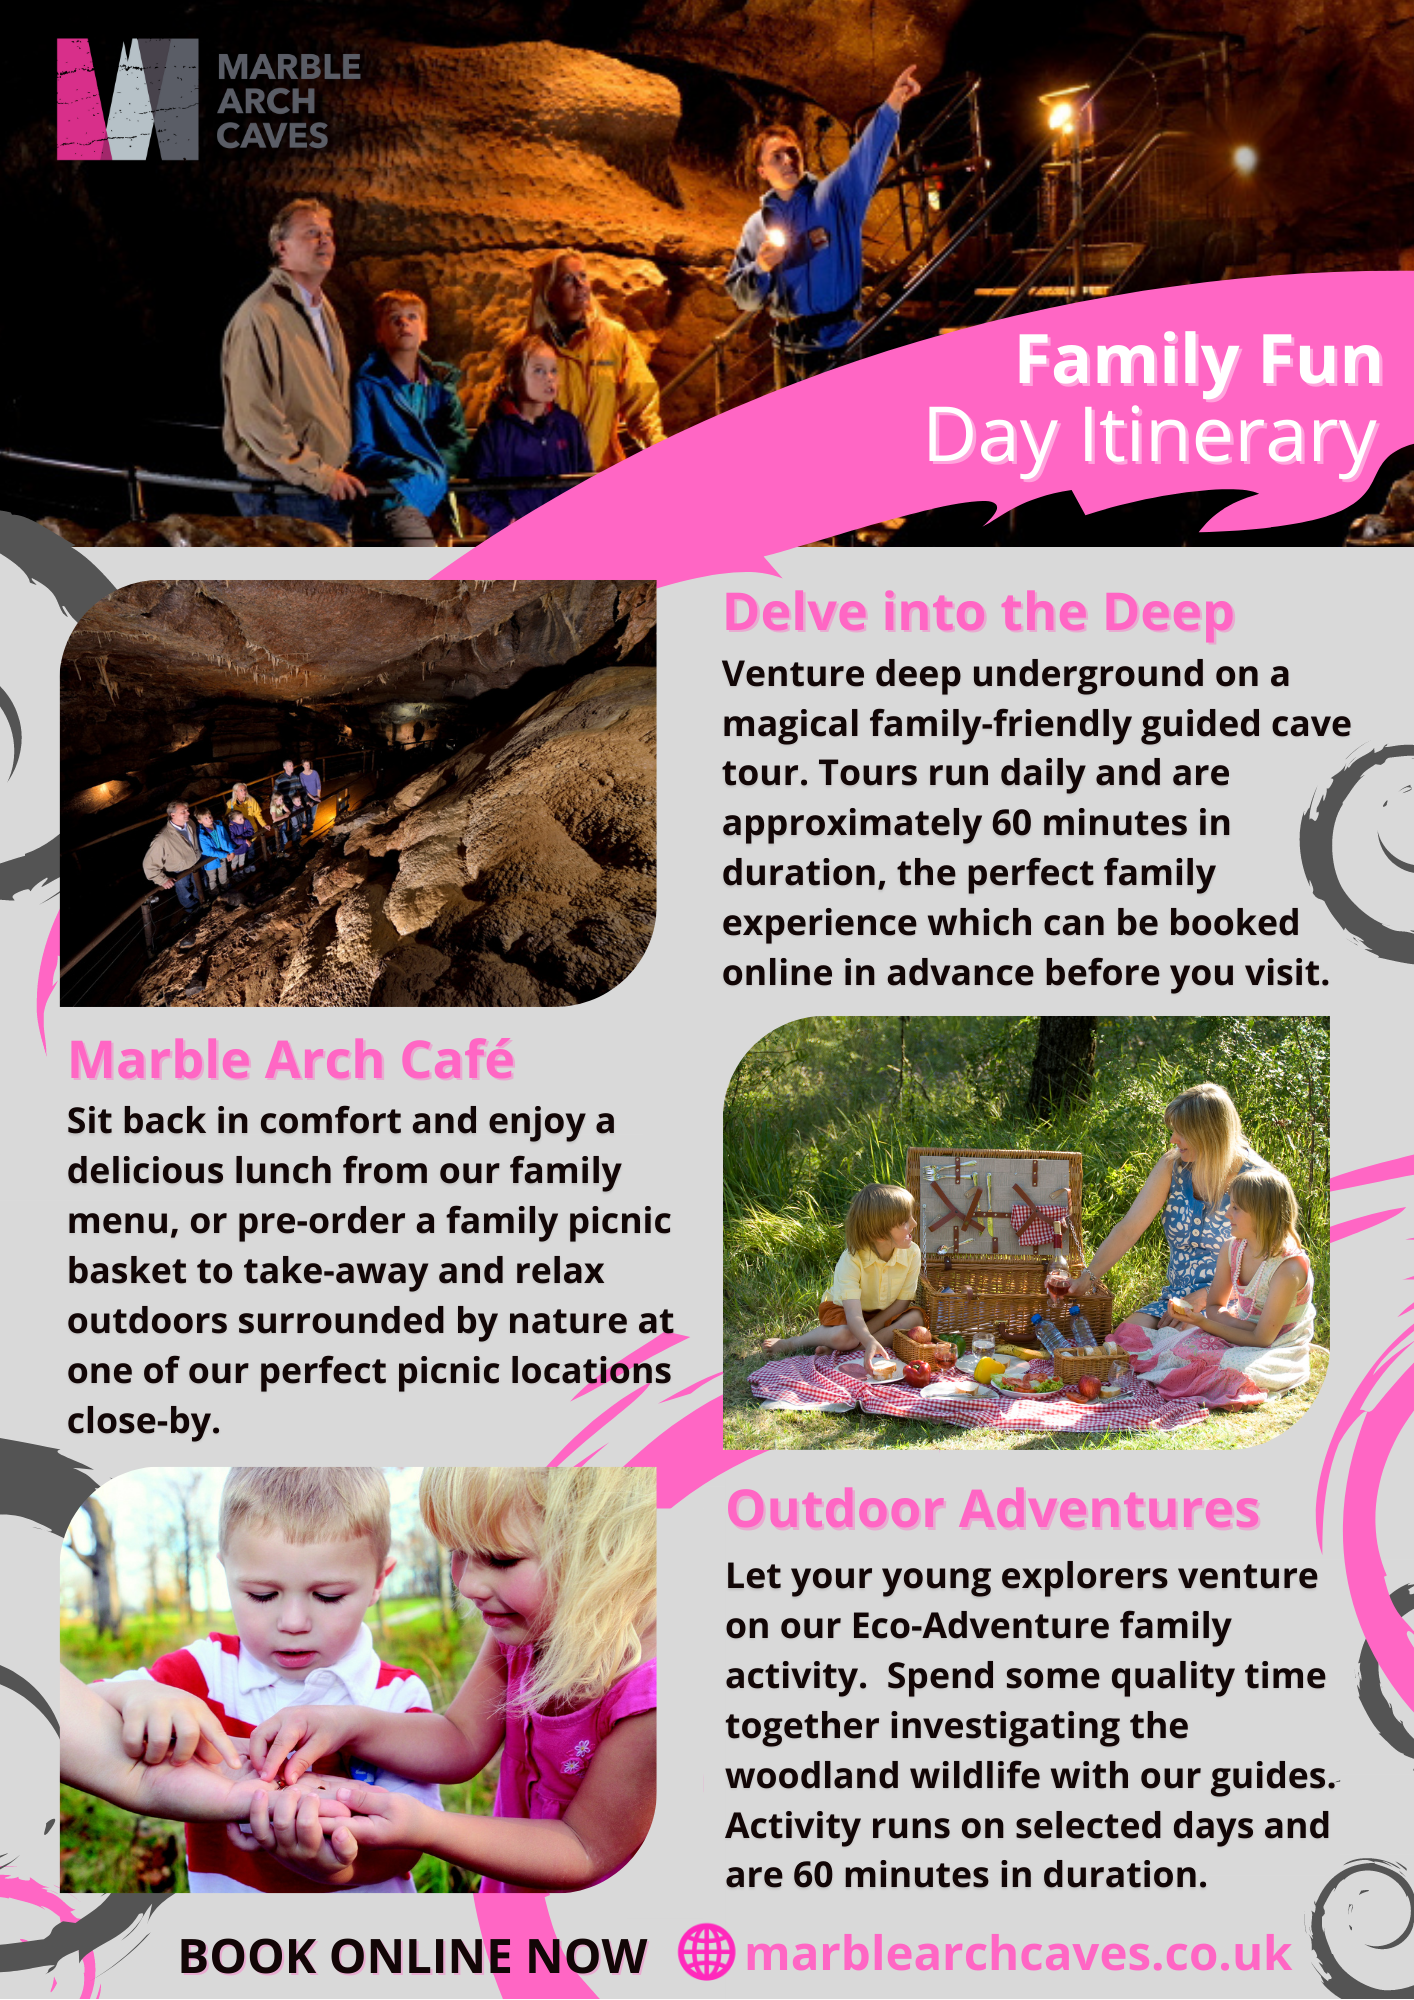 Fun Family Days Out at the Marble Arch Caves